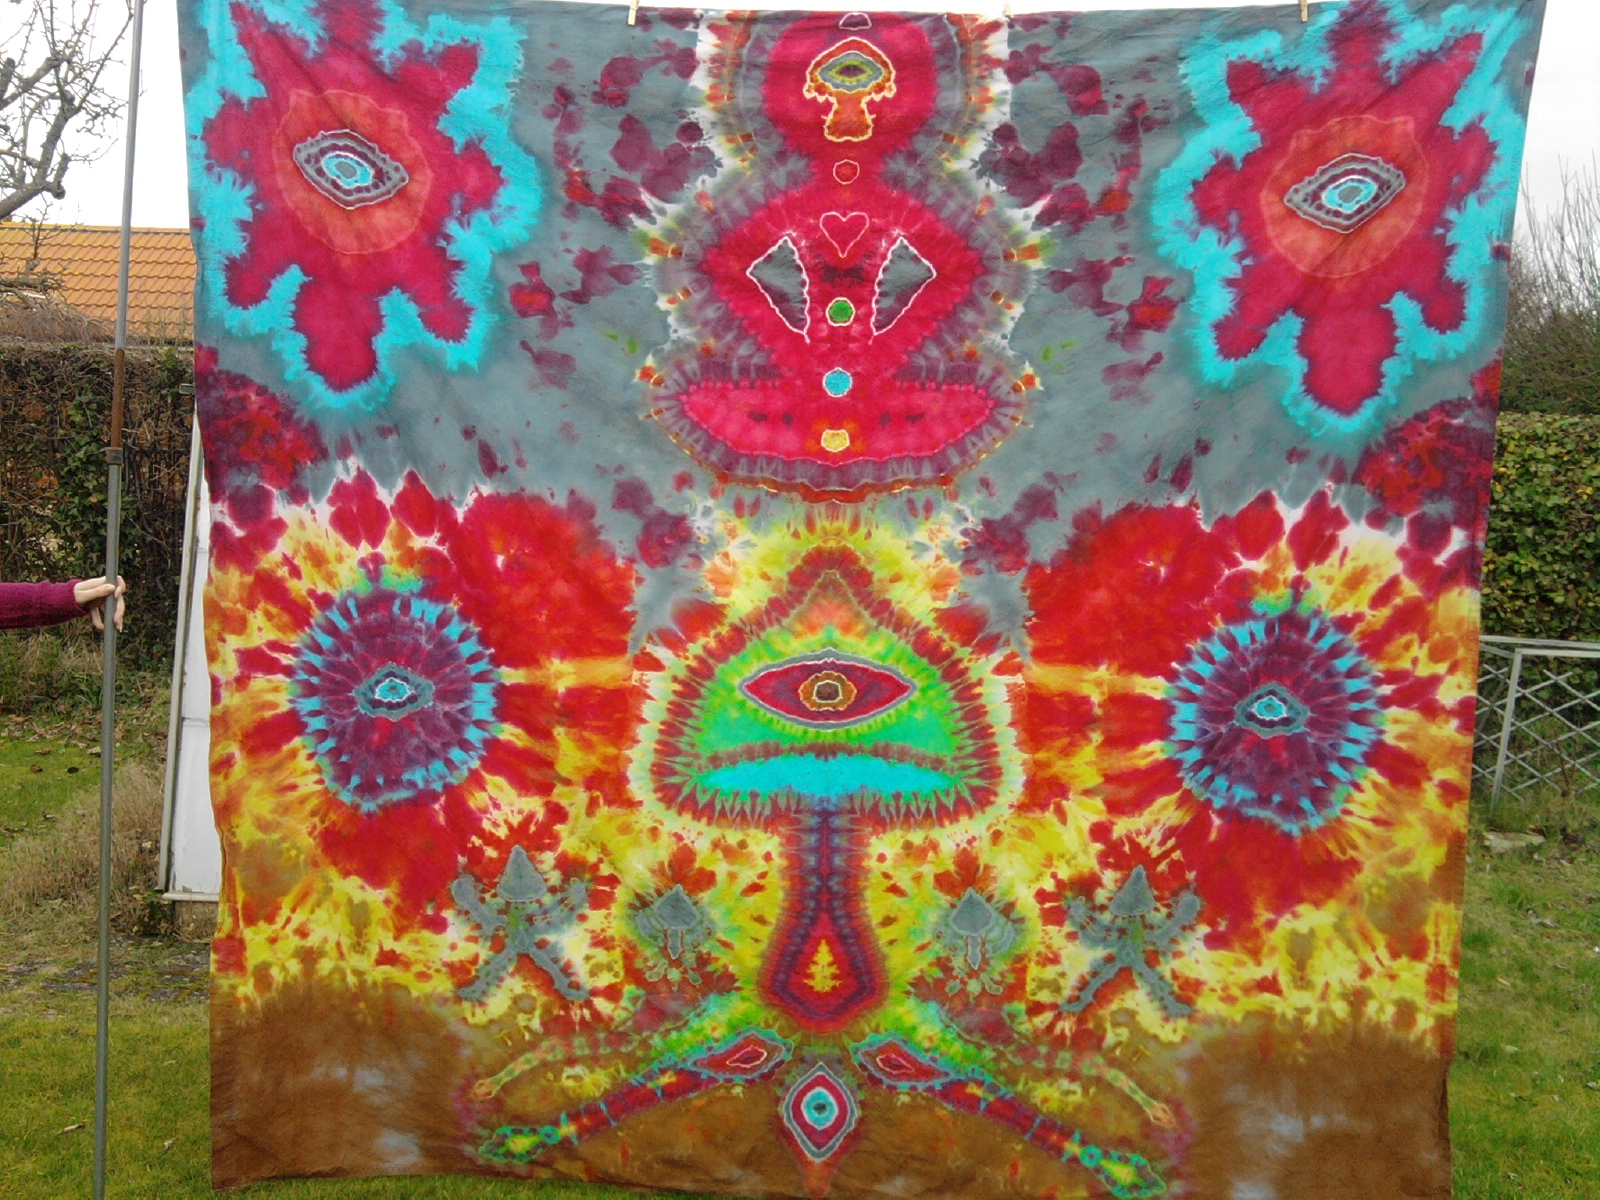 'Teonanacatl' tie dyed tapestry art